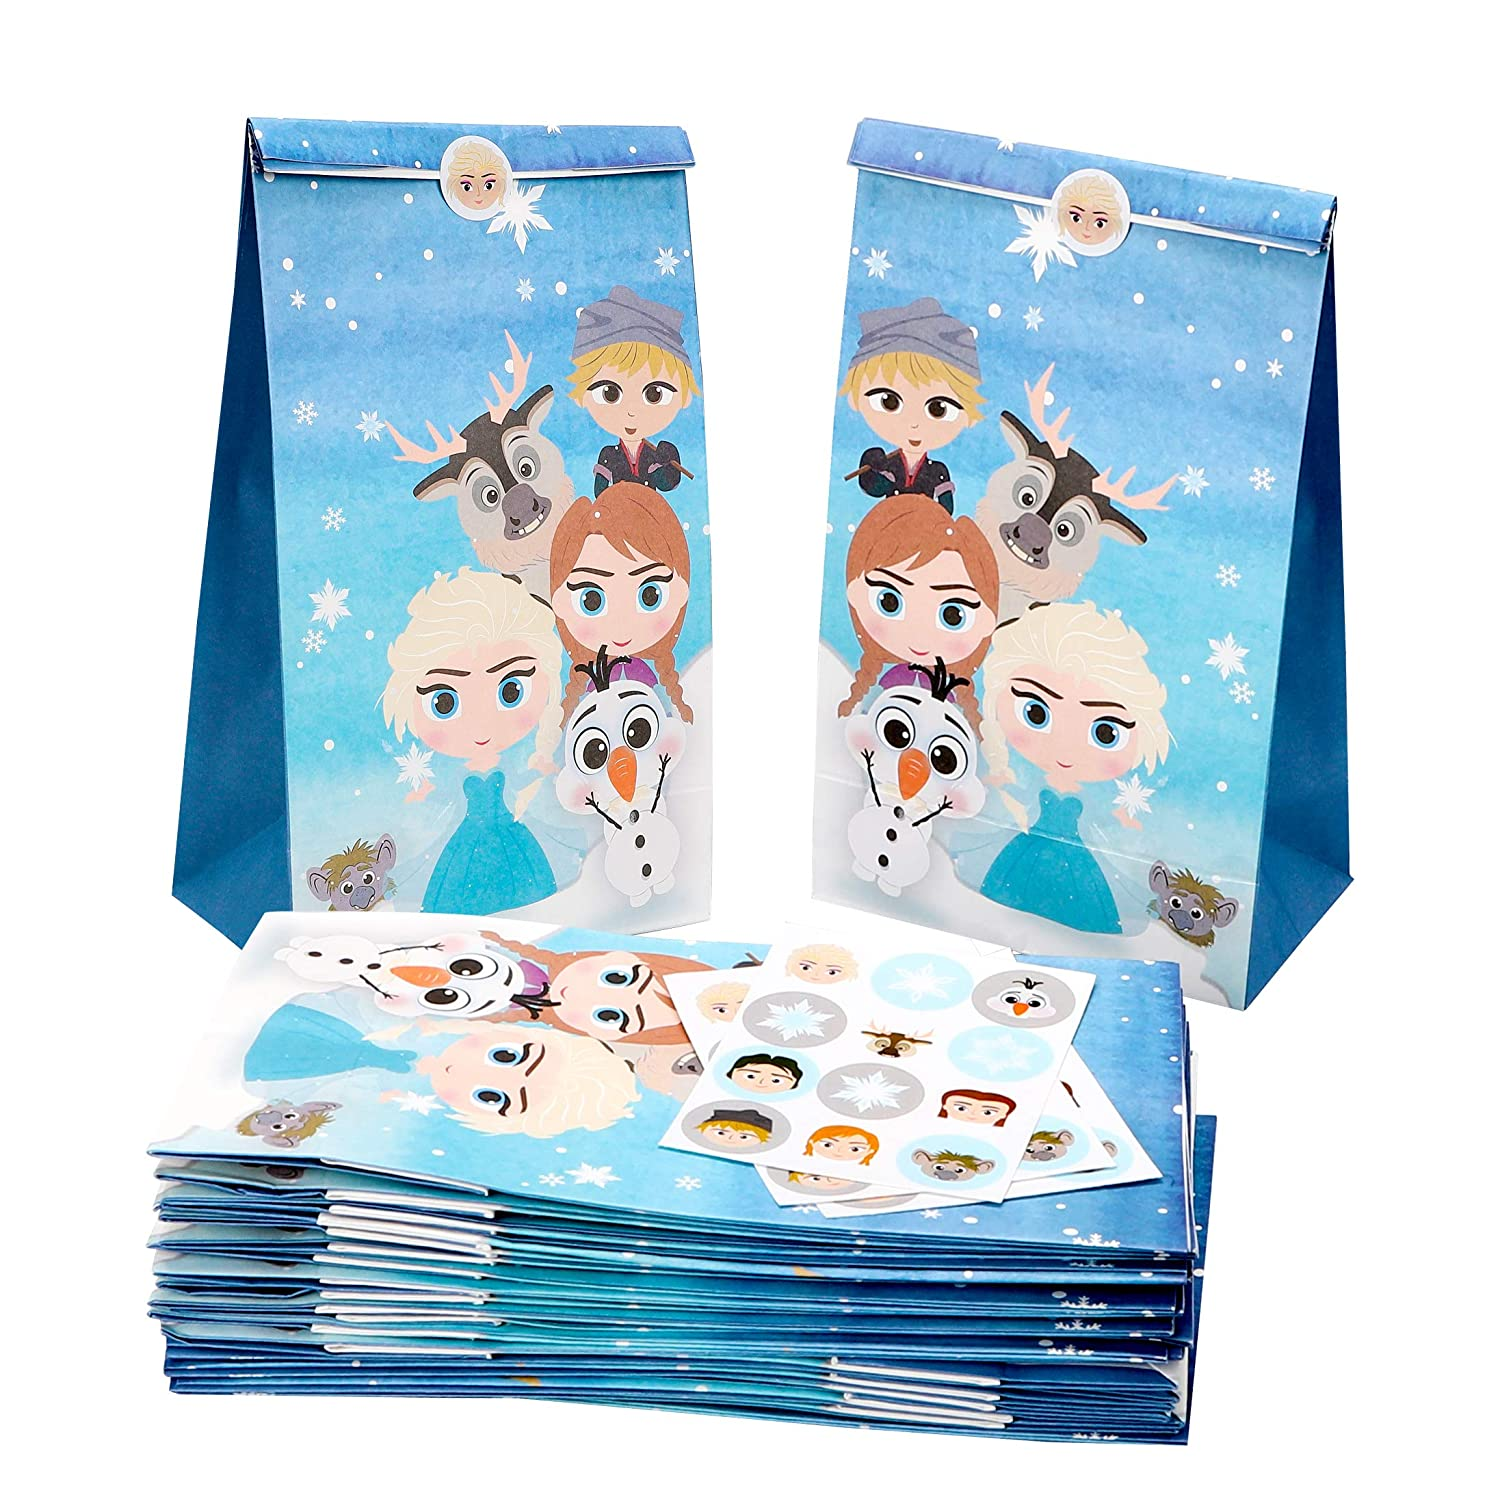 MALLMALL6 24Pcs Frozen Candy Treat Bags Princess Theme Birthday Party Supplies Winter Snow Queen Goodie Party Favor Bags Elsa Anna Baby Shower Dessert Bags with Princess Snowflake Stickers for Kids